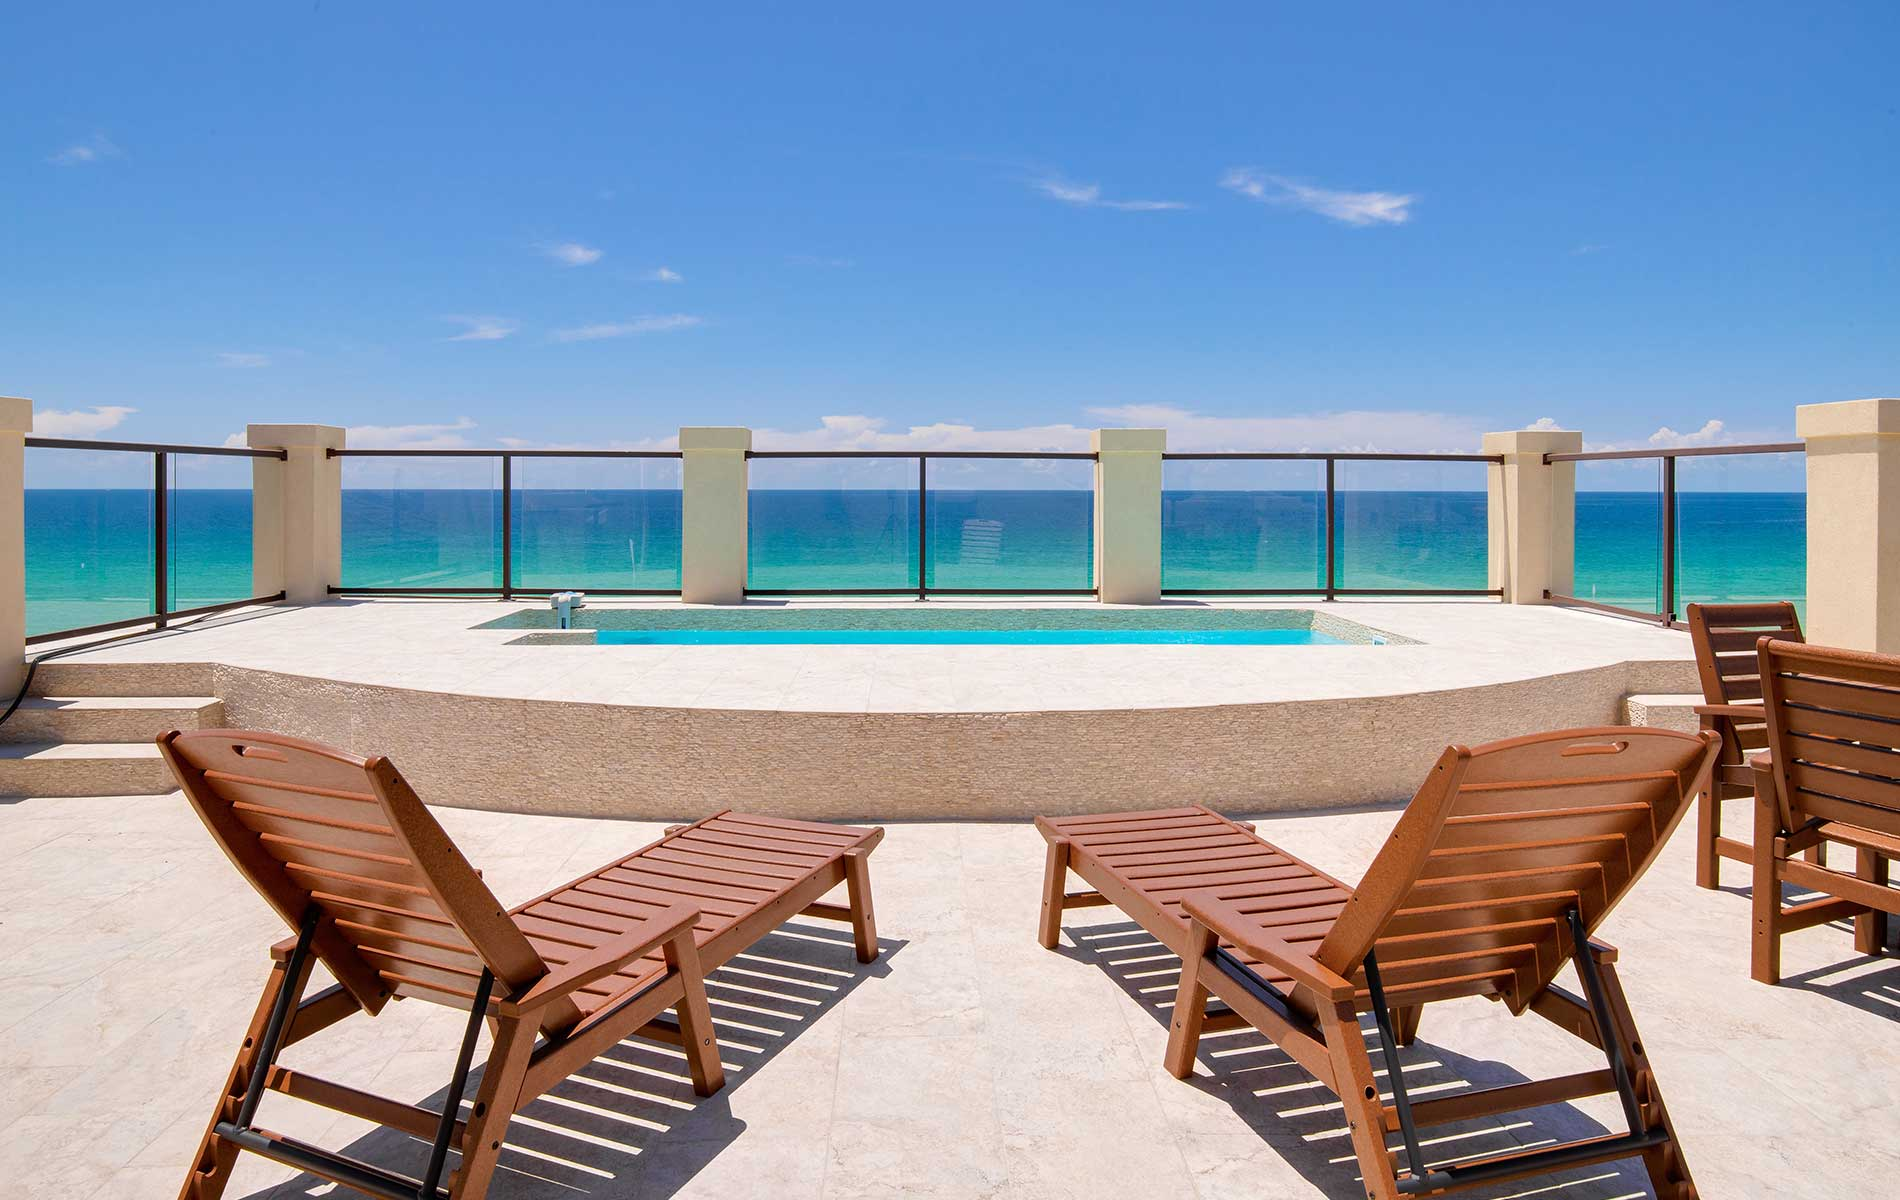 It doesn't get much better than the view of the Gulf of Mexico from 4720 Ocean Boulevard in Destin, Florida! This seven-bedroom home with private rooftop pool and sundeck is for sale through Scenic Sotheby's International Realty. Contact Blake Morar for information at (850) 231-6052.